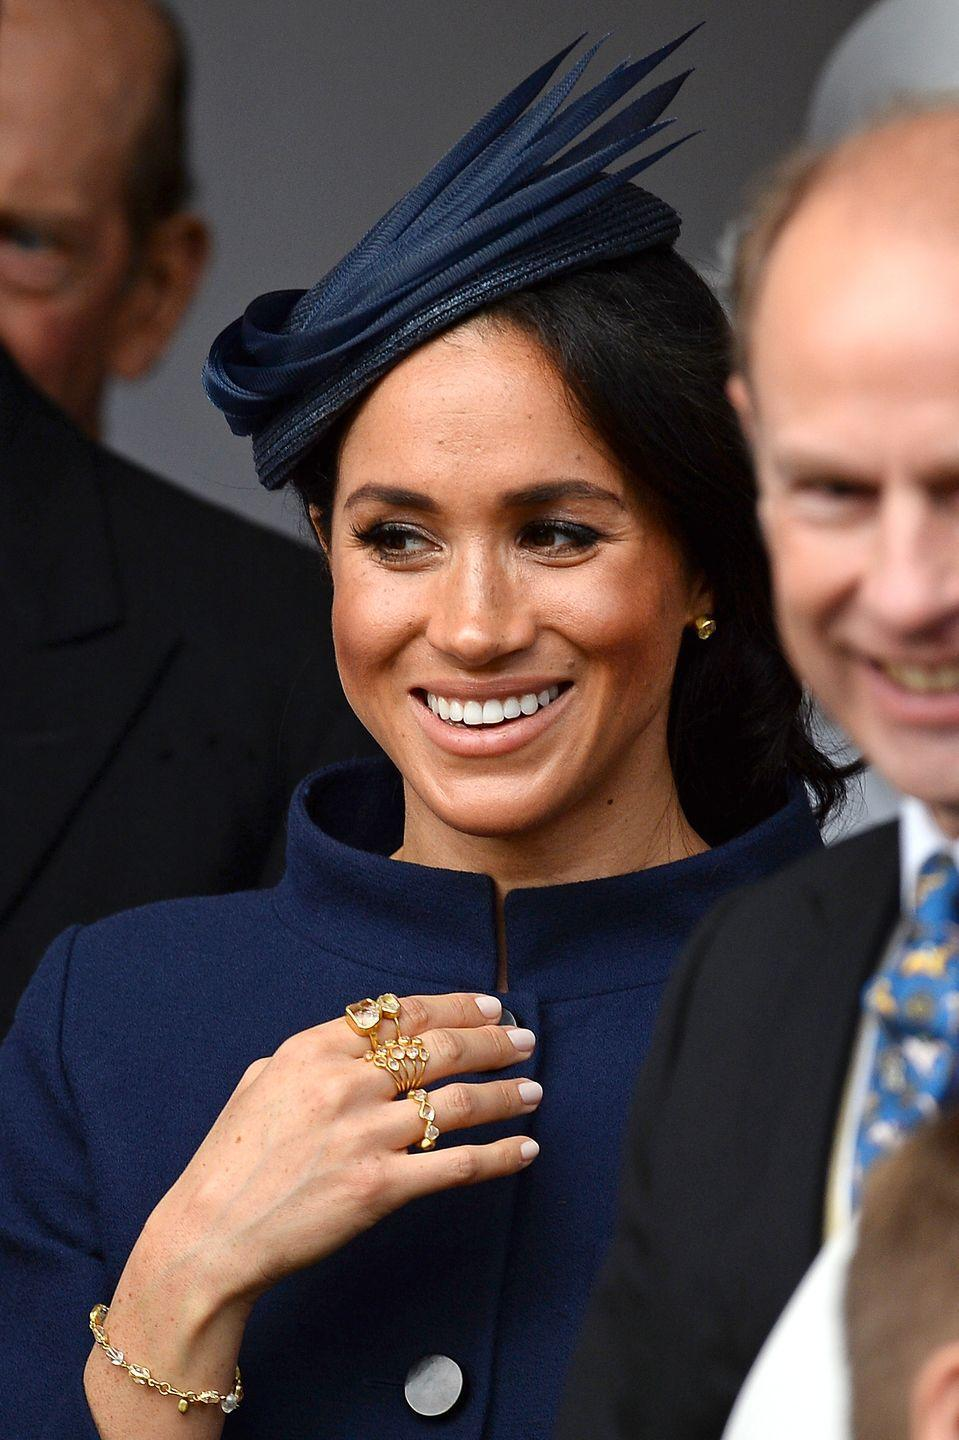 <p>Meghan layered up on gold rings for Princess Eugenie's 2018 wedding to Jack Brooksbank. </p>